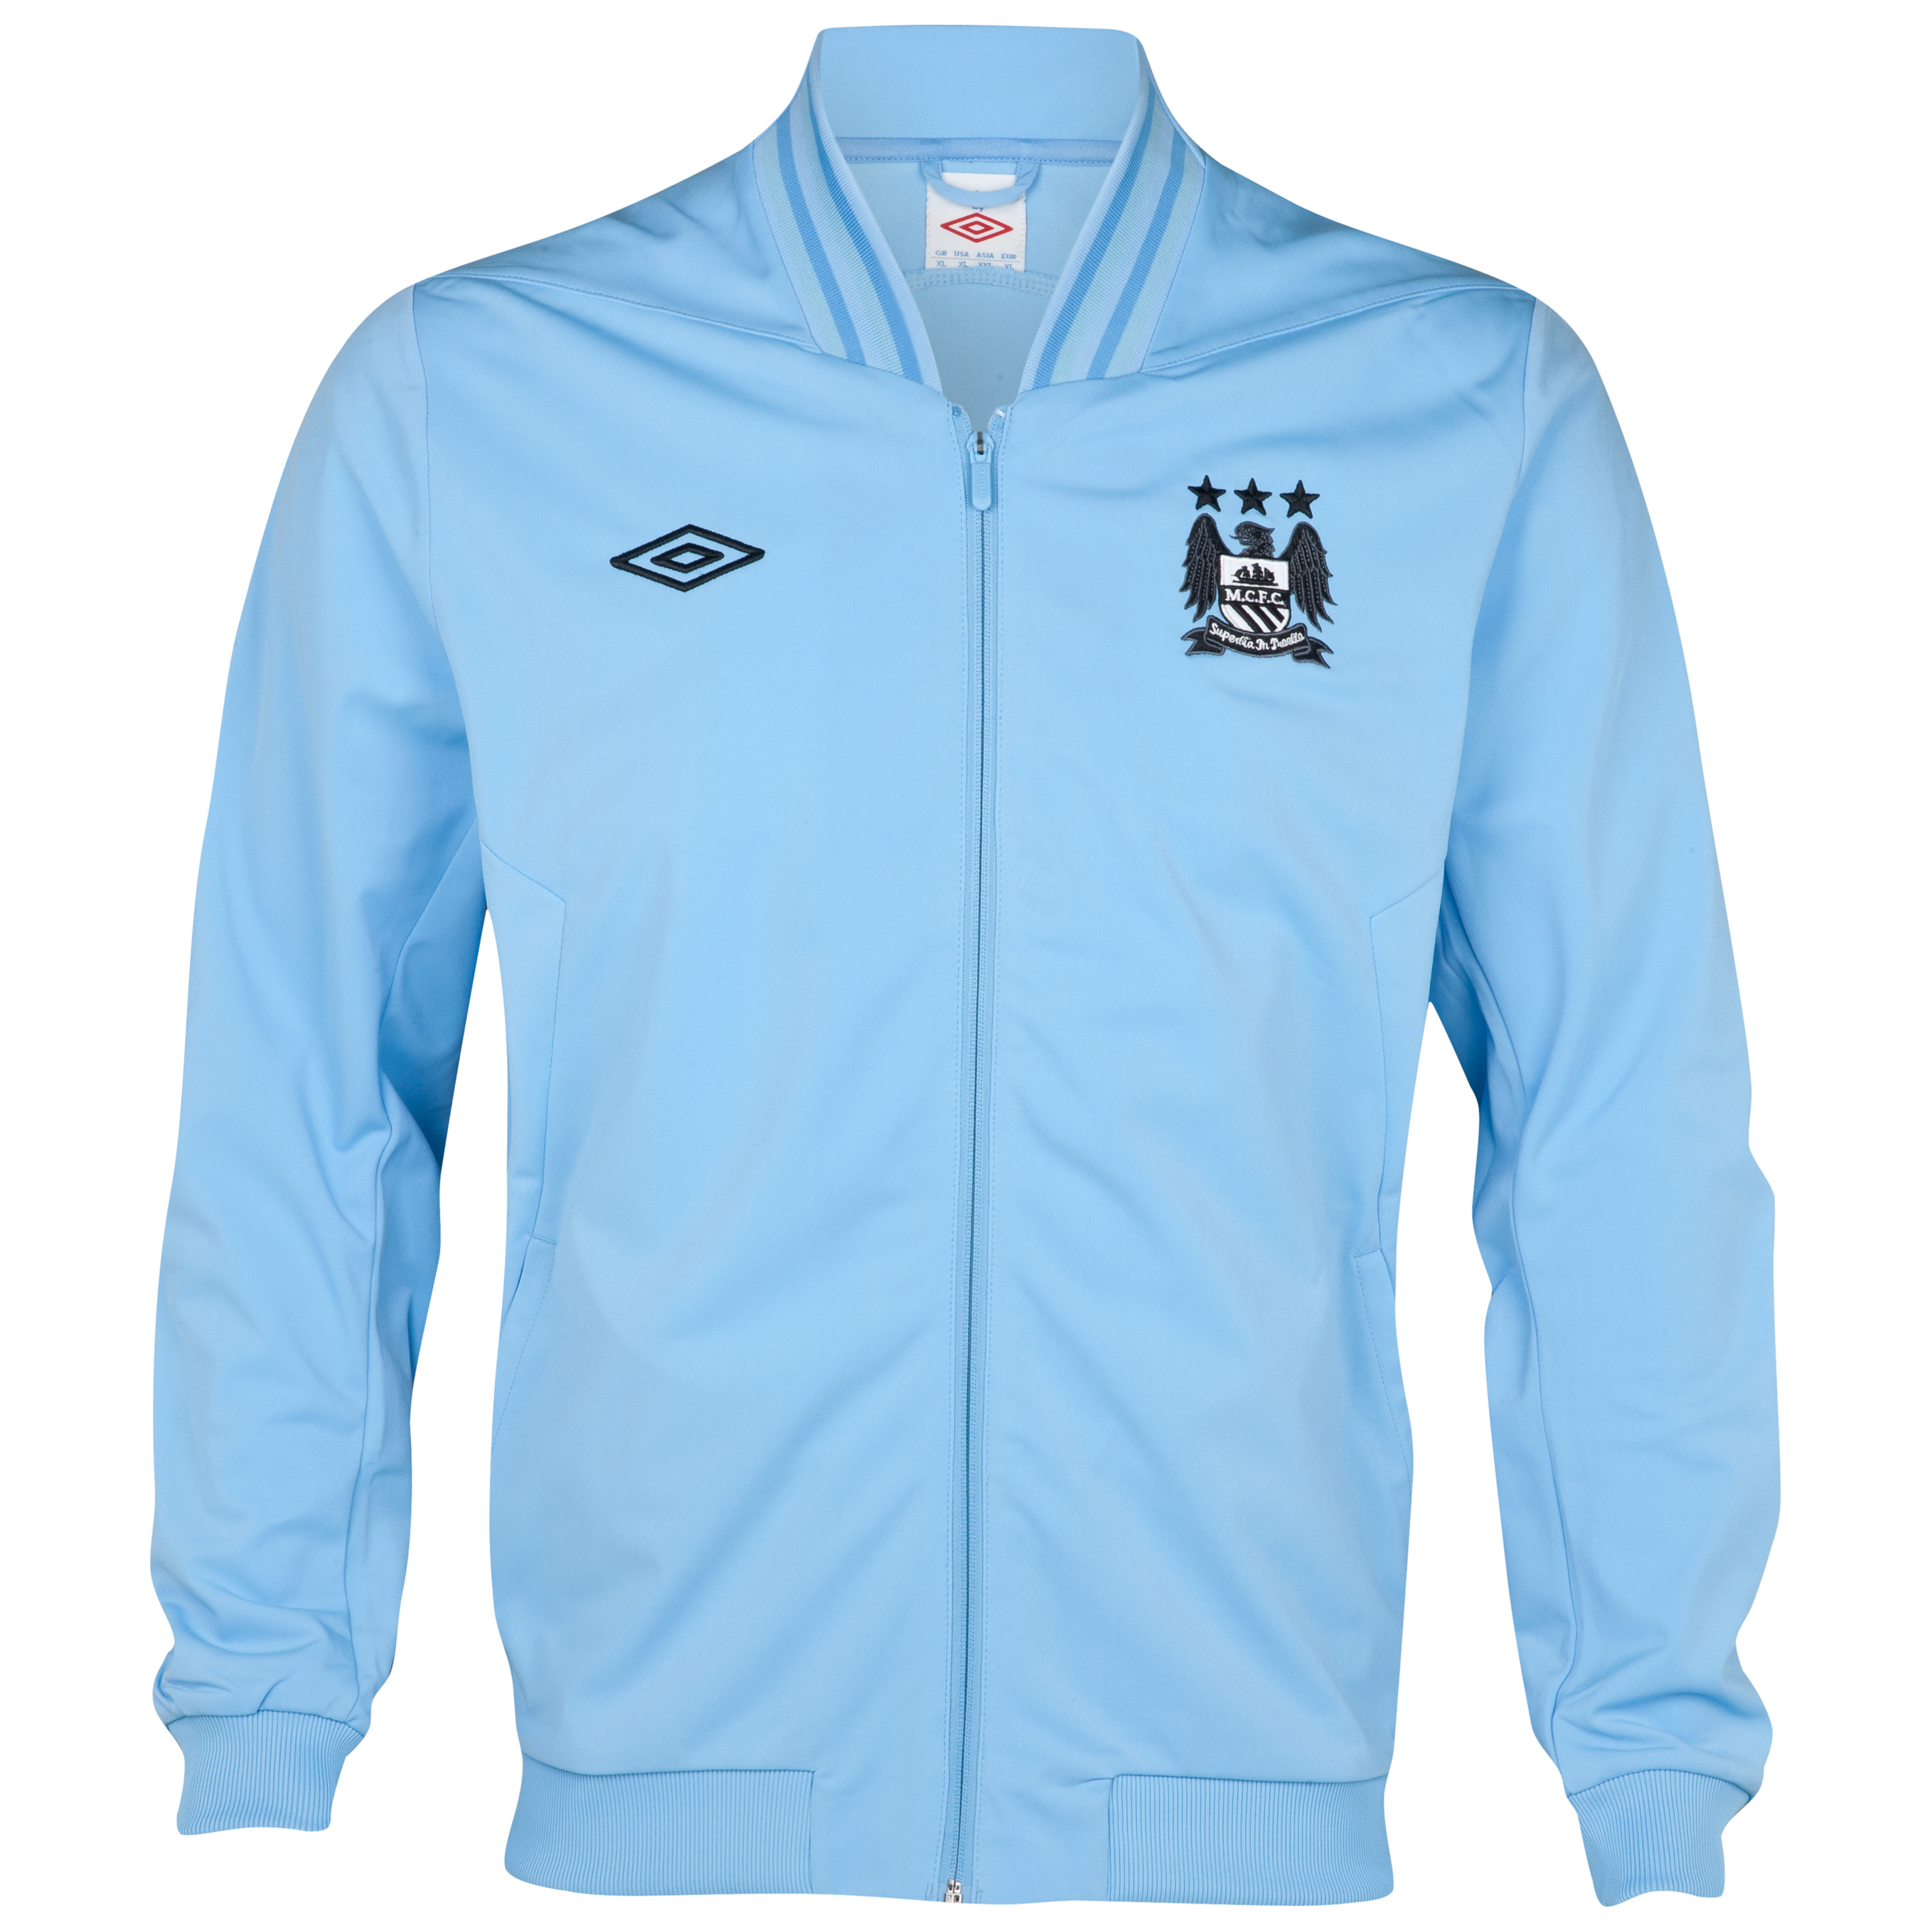 Manchester City Jacket - Vista Blue